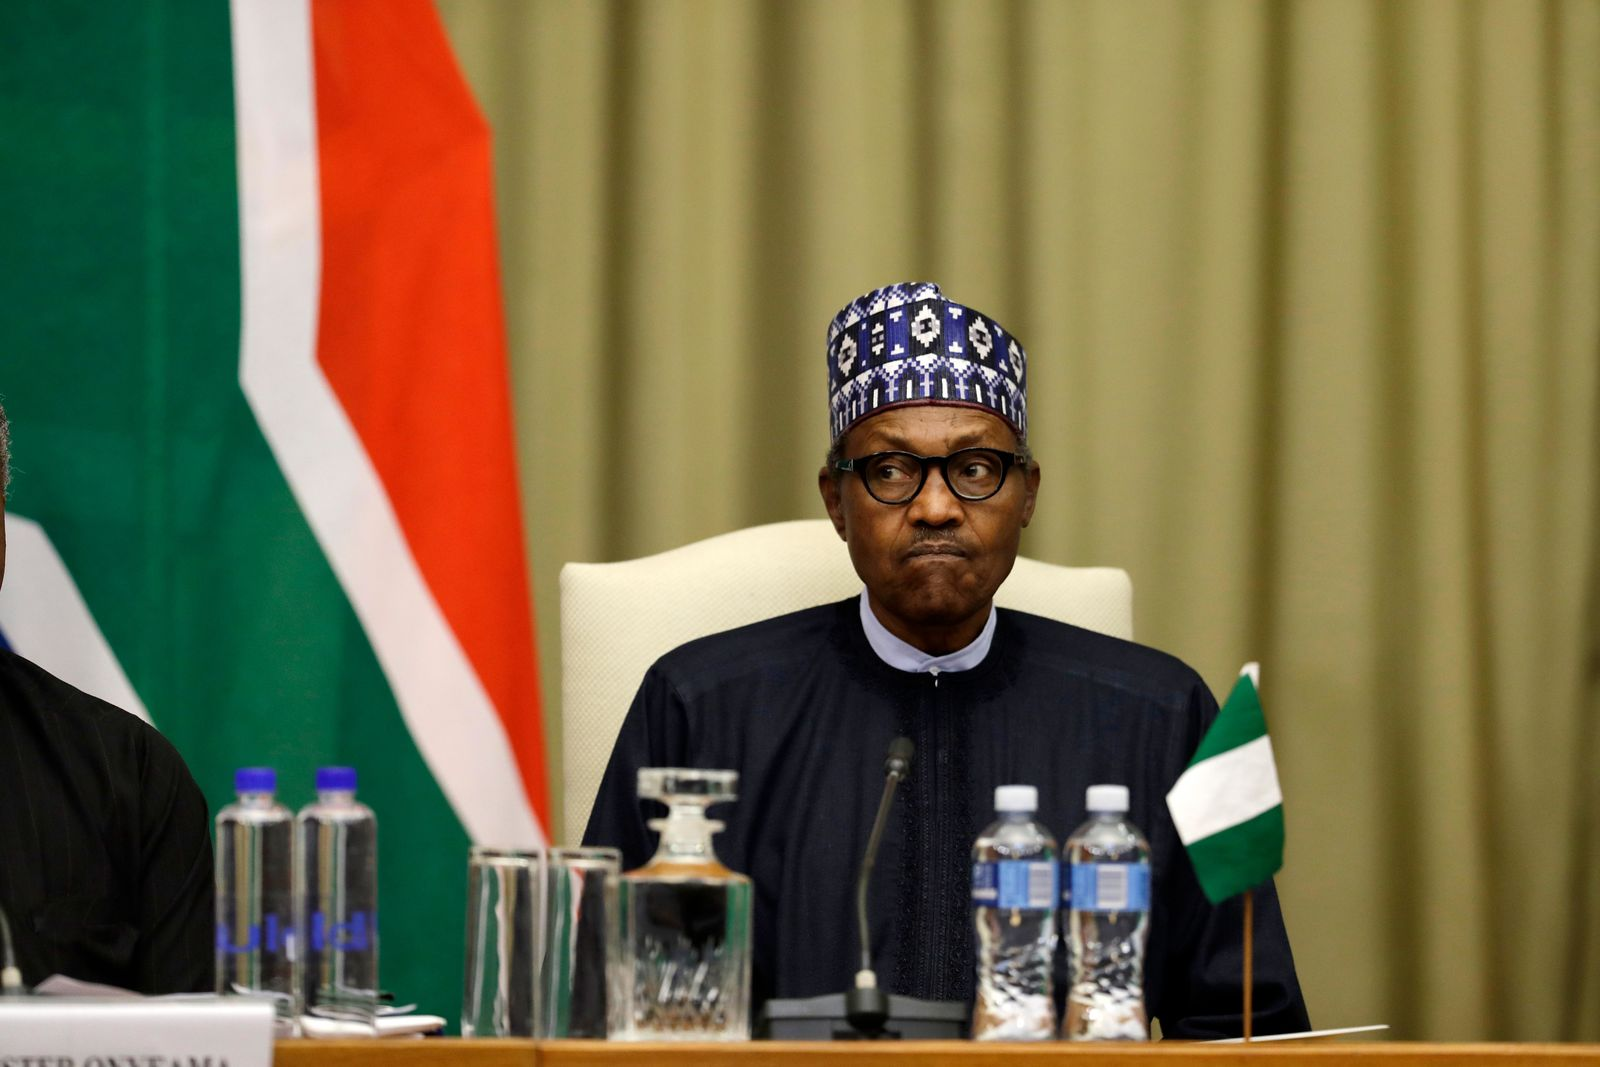 Nigerian President Muhammadu Buhari attends a meeting with South Africa's President, Cyril Ramaphosa, after a welcoming ceremony in Pretoria, South Africa Thursday, Oct. 3, 2019. (AP Photo/Themba Hadebe)